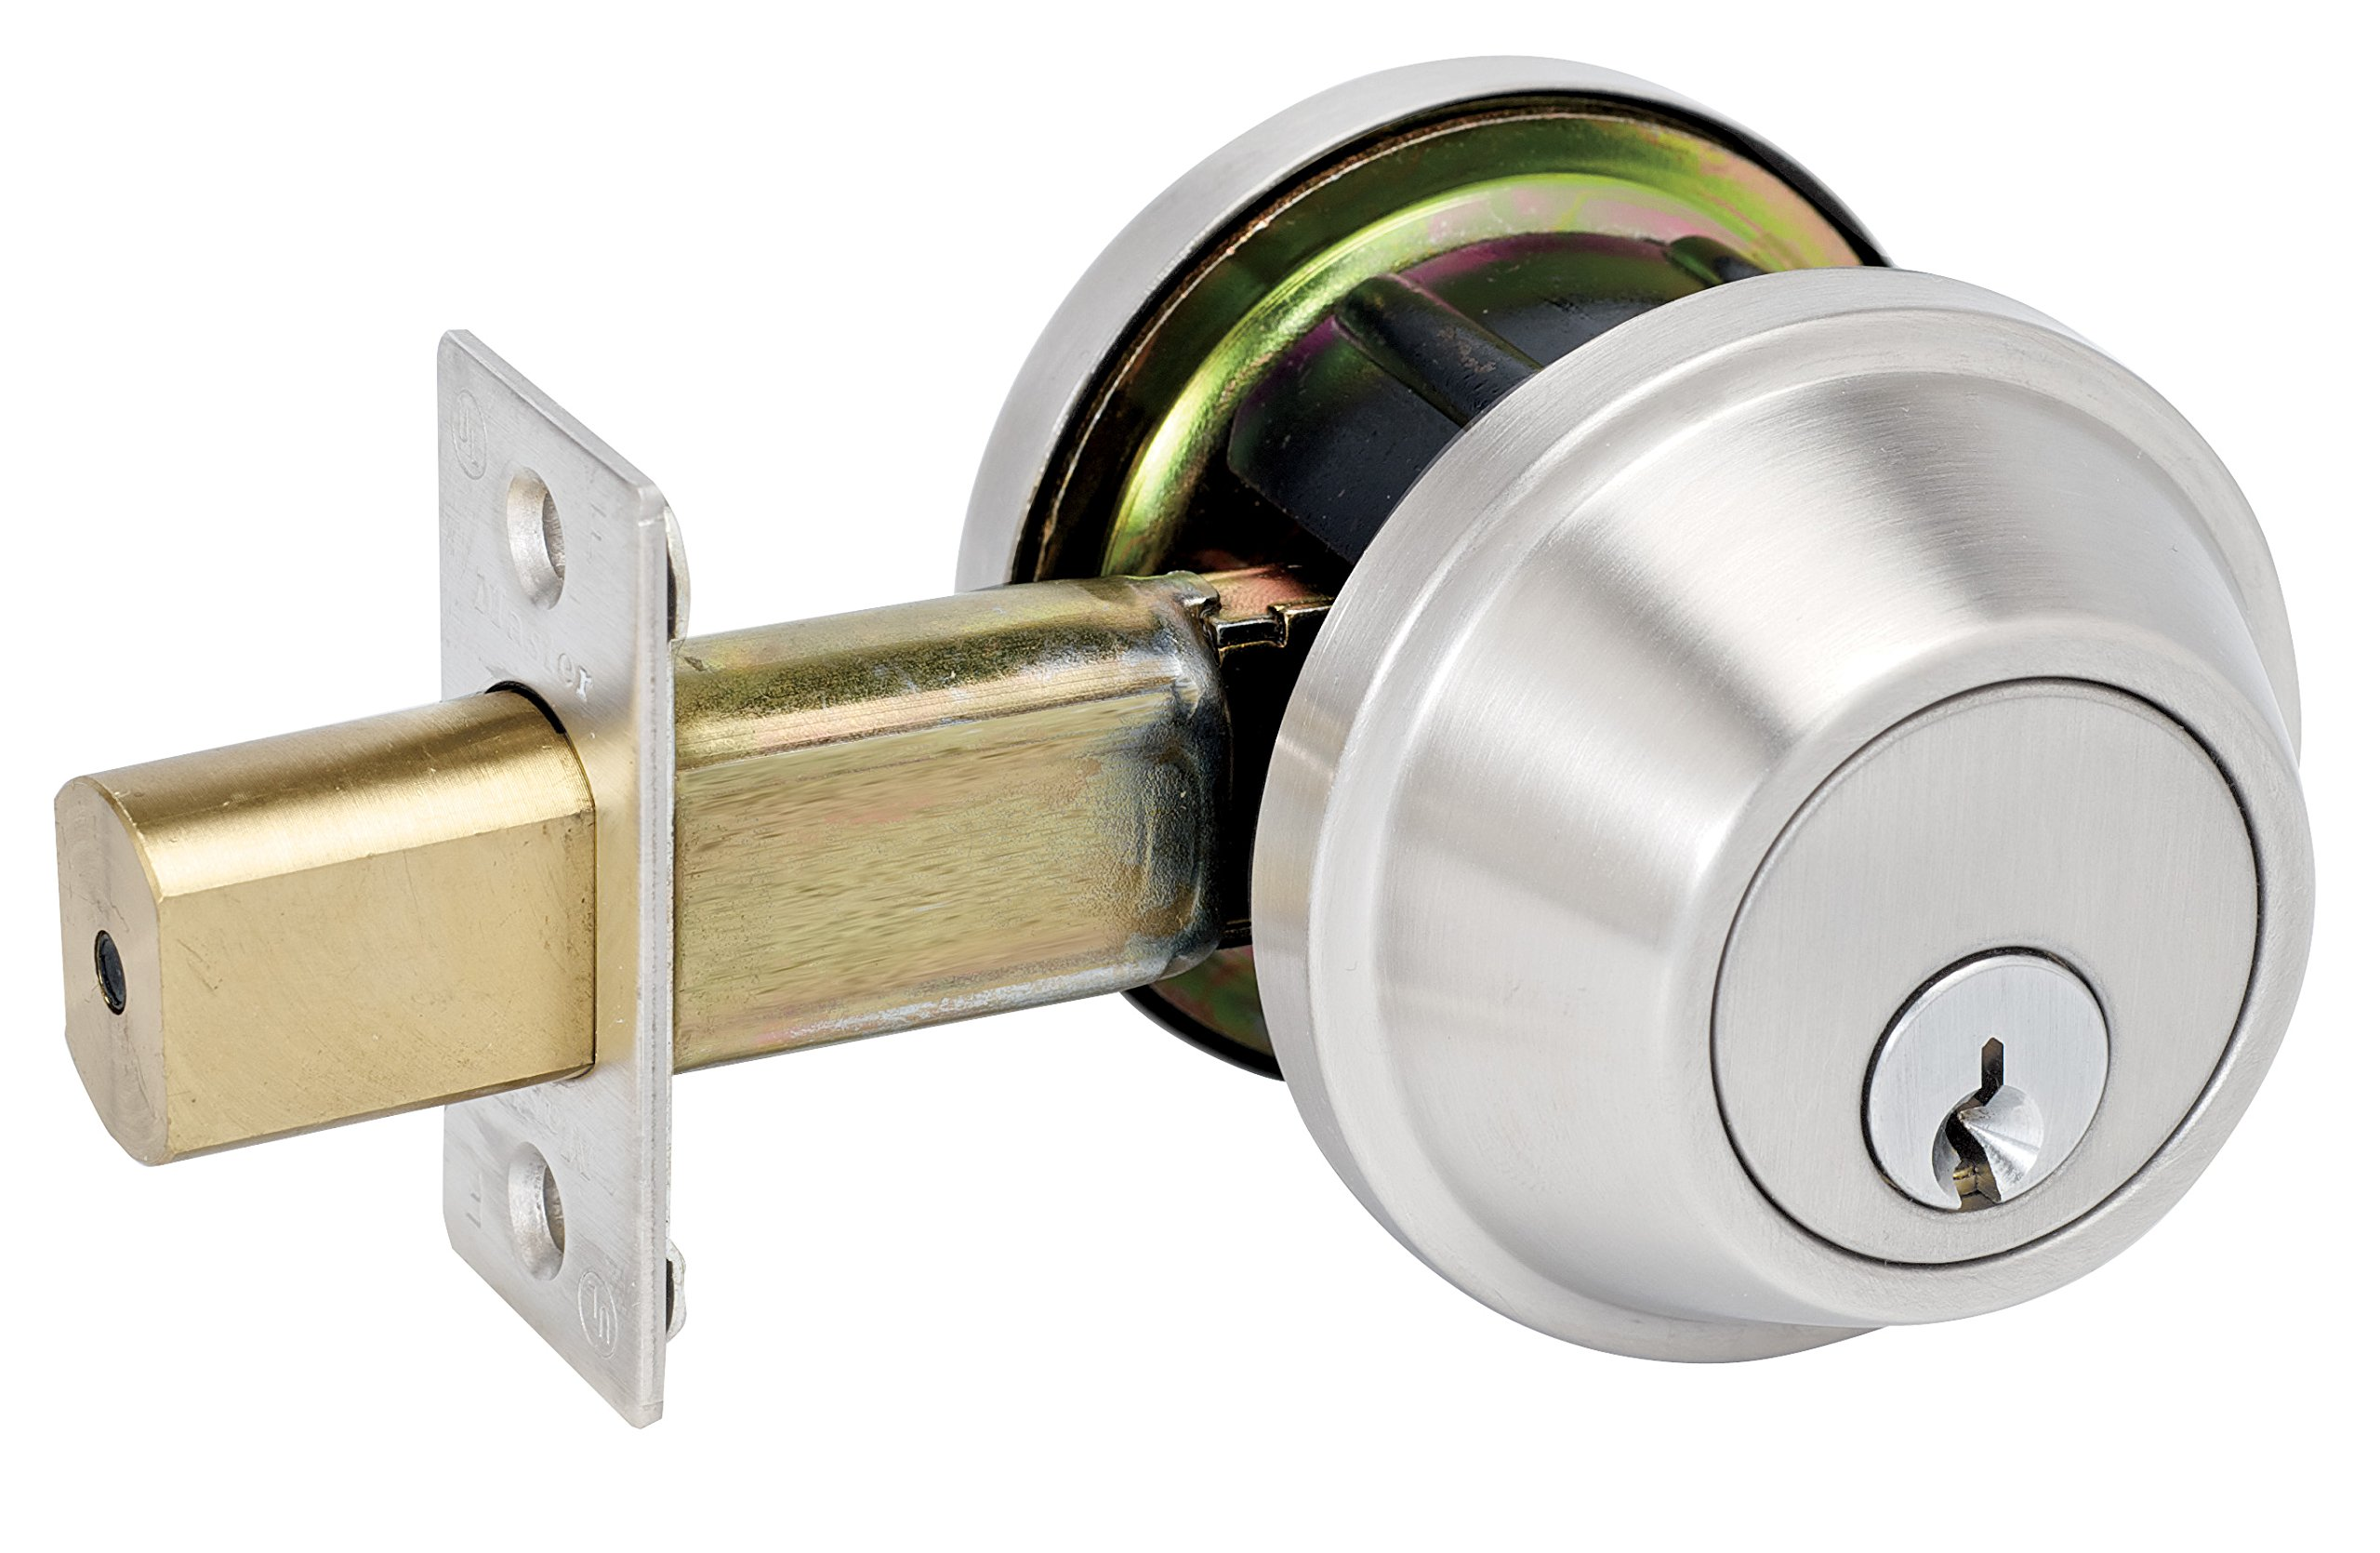 Master Lock DSCHDD32D Heavy Duty Double Cylinder, Grade 2 Commercial Deadbolt with Bump Stop, Brushed Chrome Finish